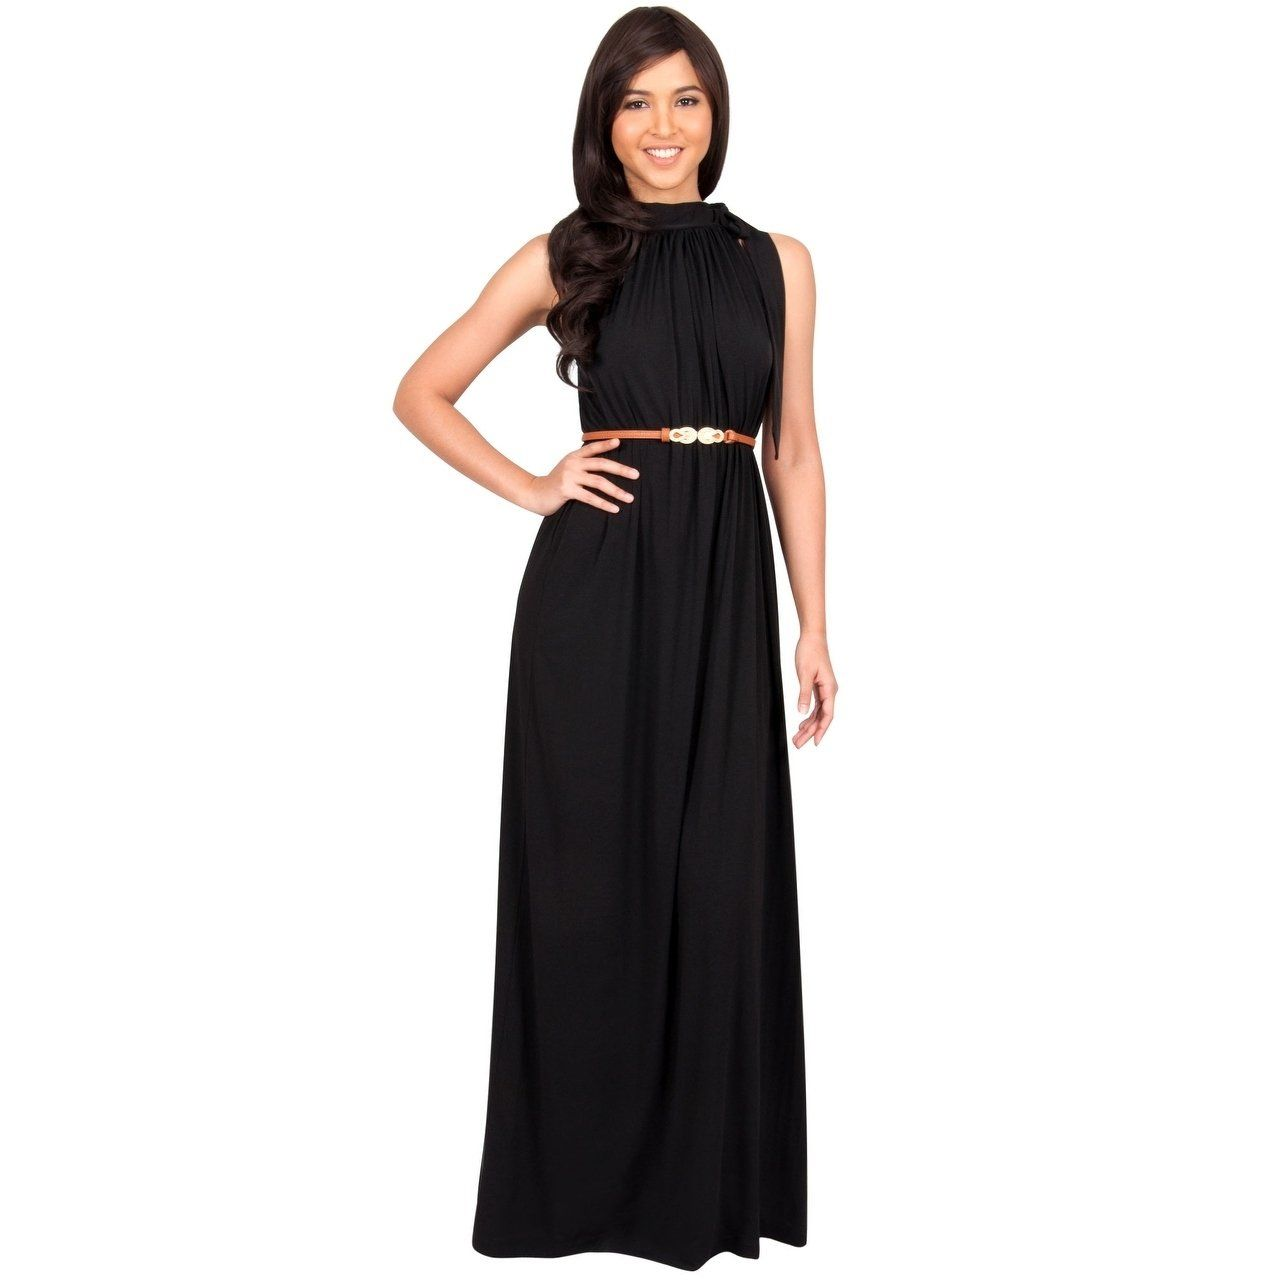 9932fb020e KOH KOH Womens Long Prom Formal Bridesmaid Belt Flowy Gown Maxi Dress  (Black - L) - Large (polyester)